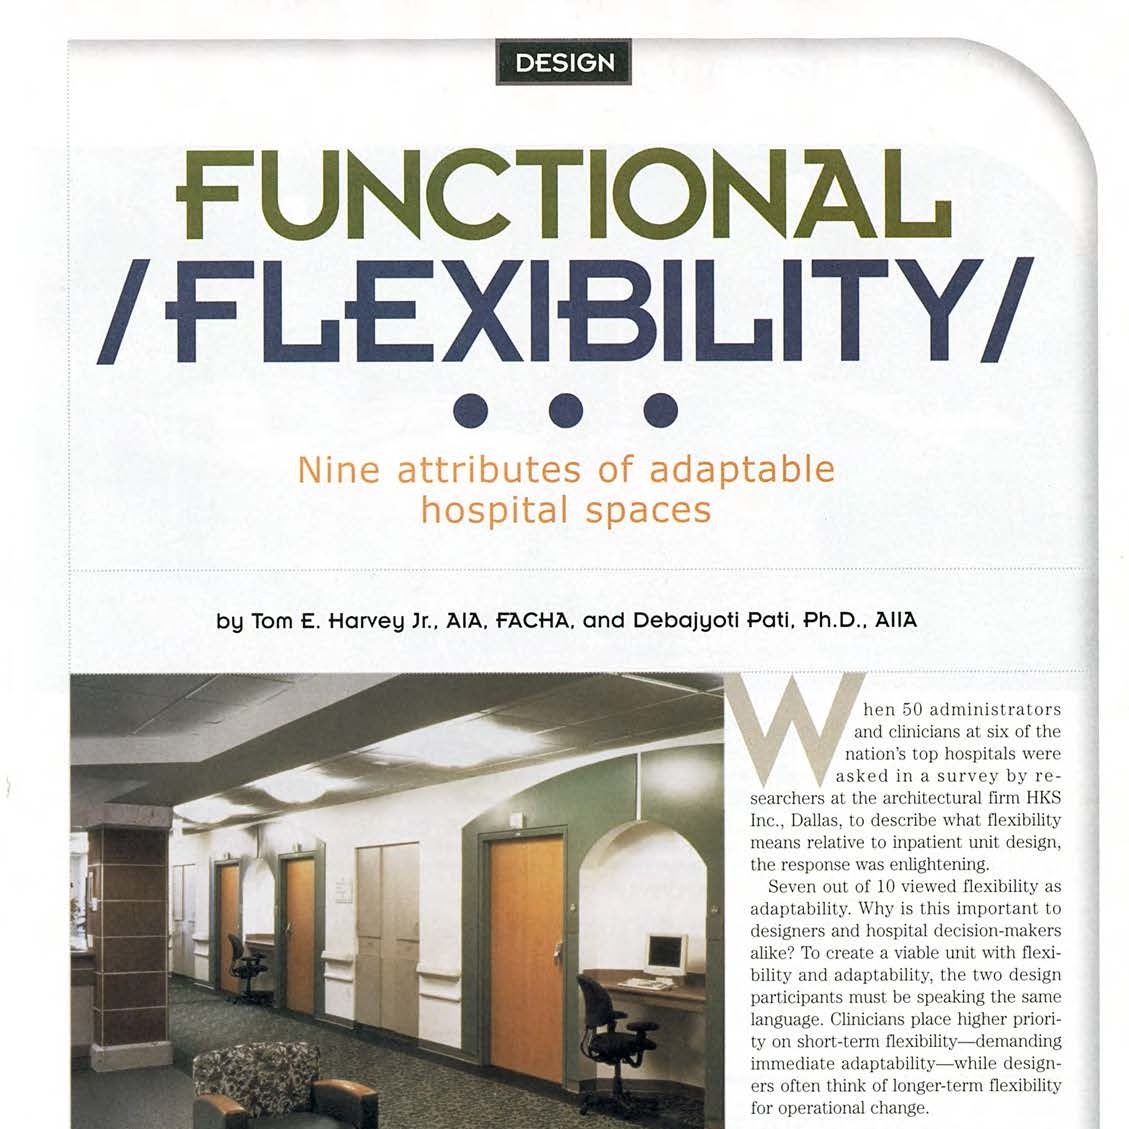 Functional Flexibility: Nine Attributes of Adaptable Hospital Spaces.   Thomas Harvey and Debajyoti Pati.  Health Facilities Management, 21 (2), 29-34.